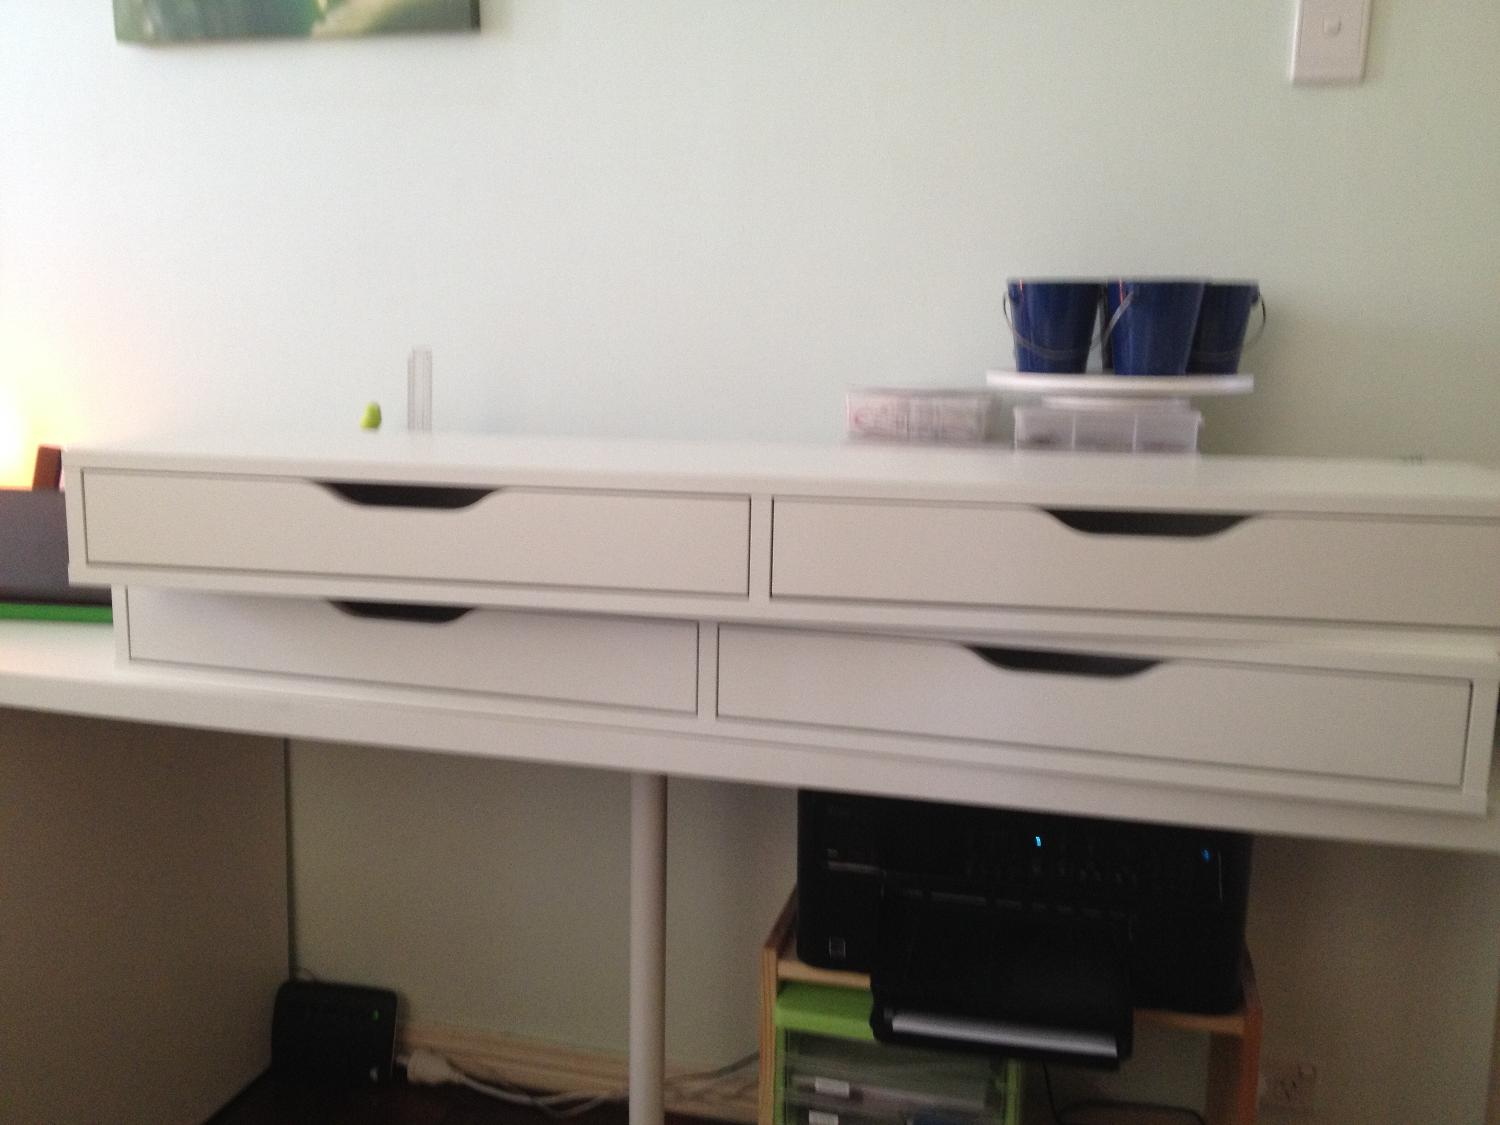 Best Ikea Ekby Alex Shelf With Drawers For Sale In Gumdale Queensland For 2018